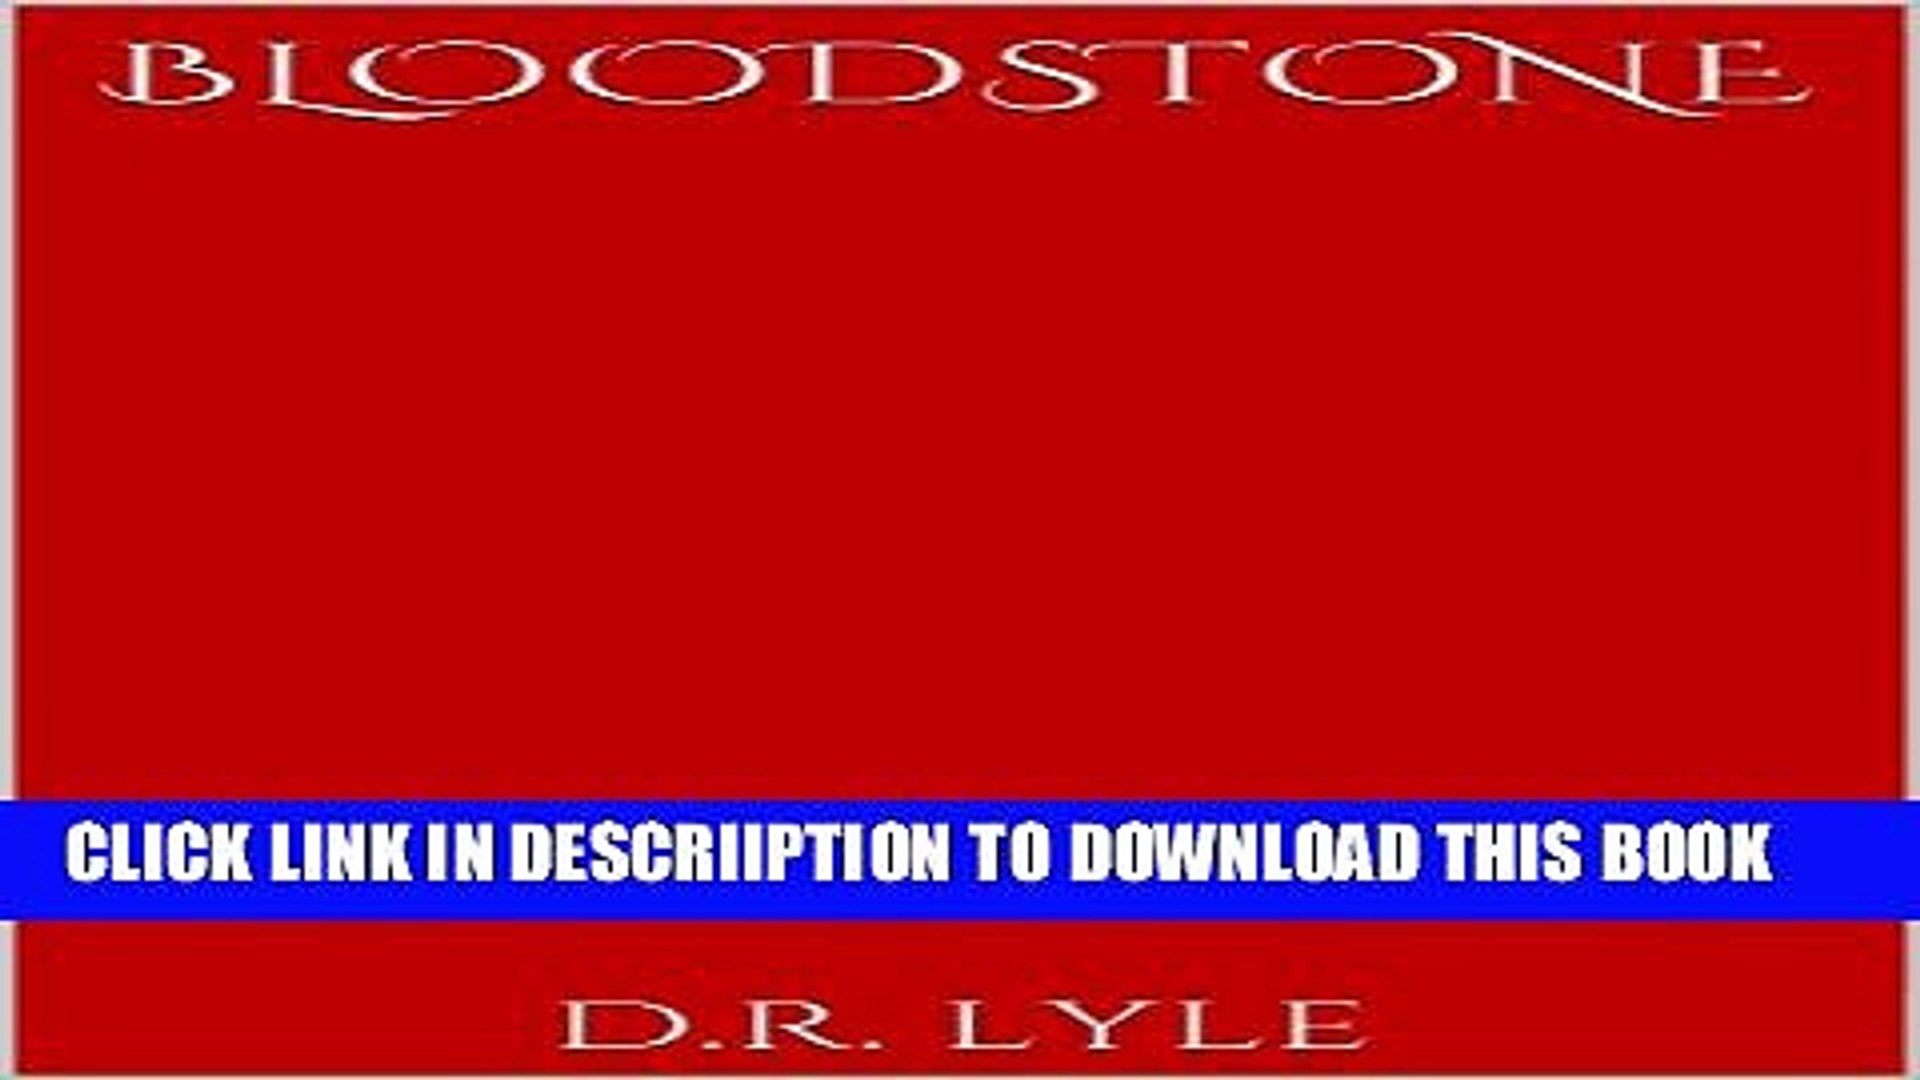 [New] Bloodstone: A Fairy Tale for Grown-ups, Lillianna Saga: Book One Exclusive Online